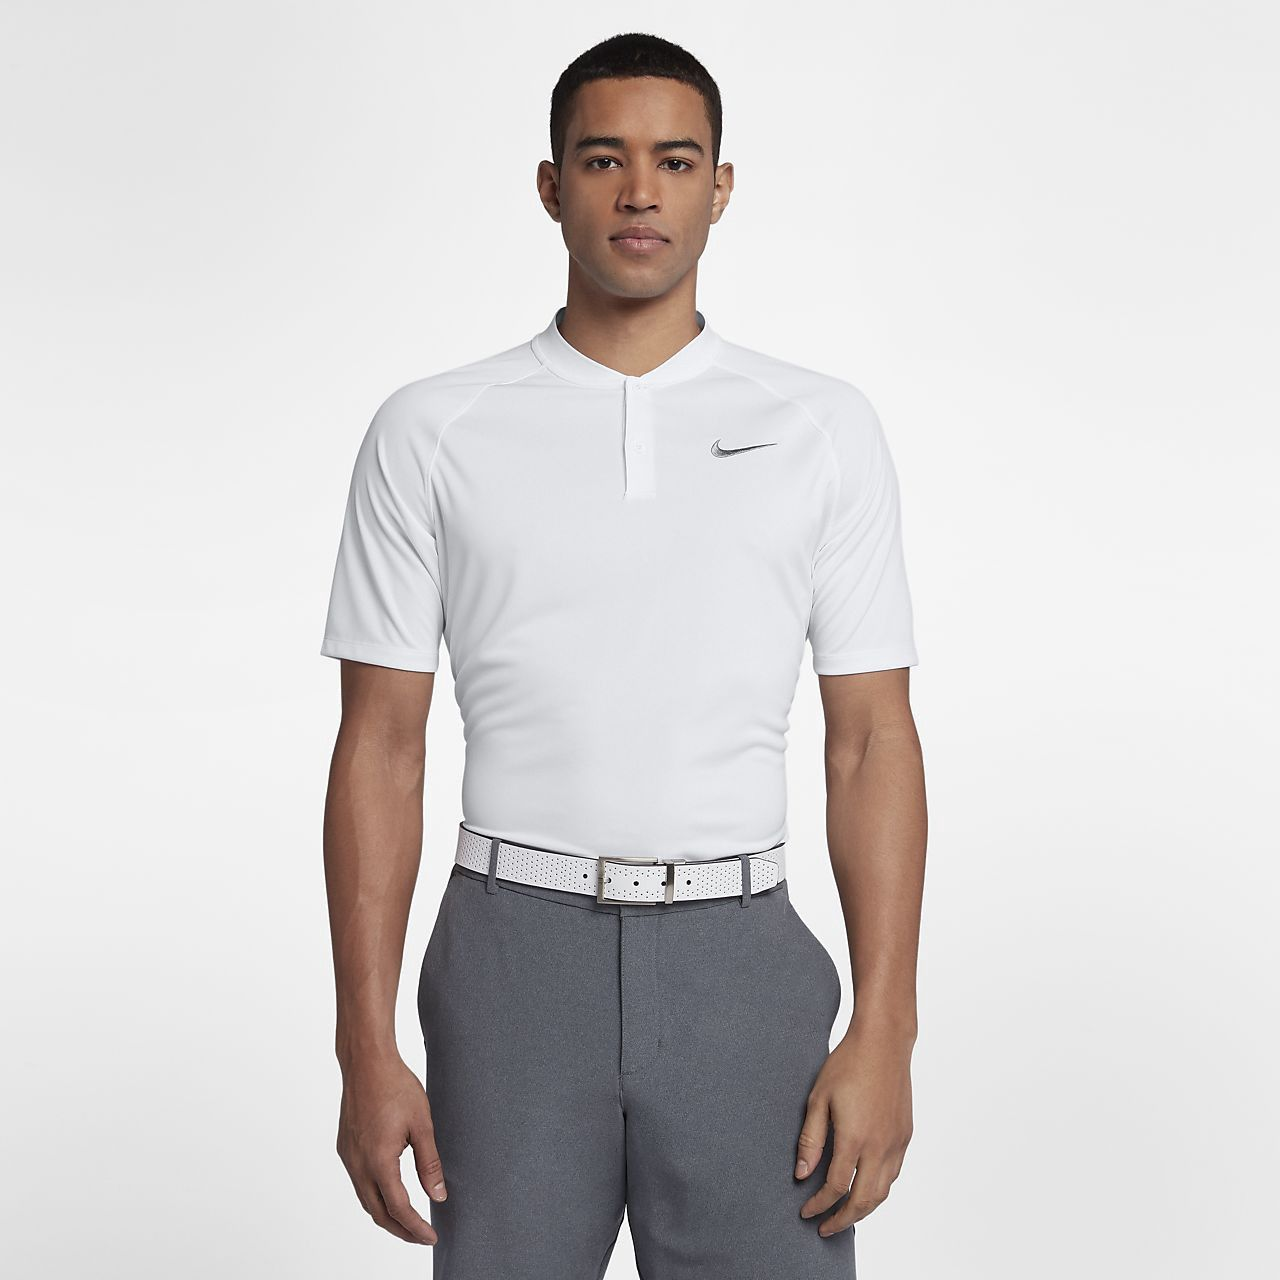 a4e0aa8a Nike Dri-Fit Momentum Men's Standard Fit Golf Polo - 2XL | Products